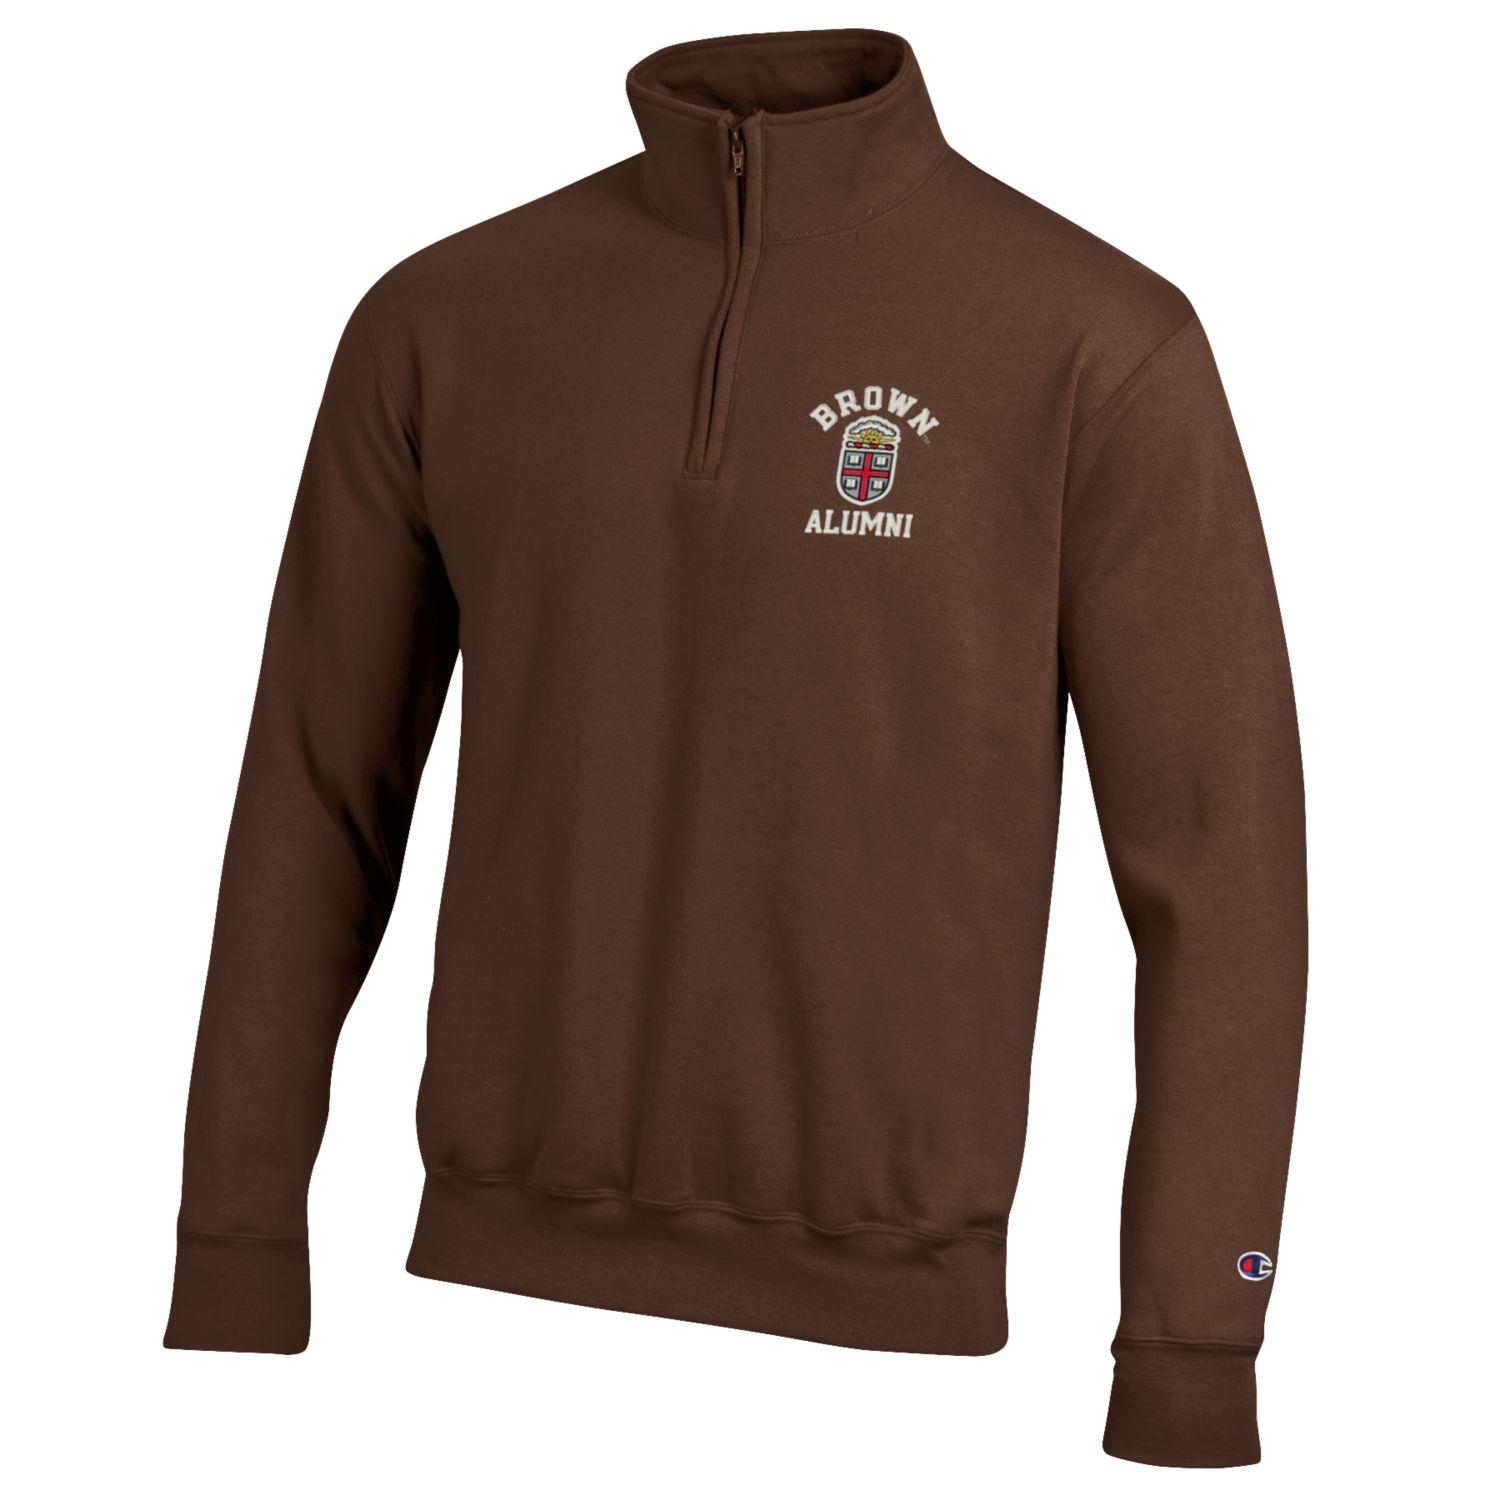 Image For Champion Powerblend Alumni 1/4 Zip